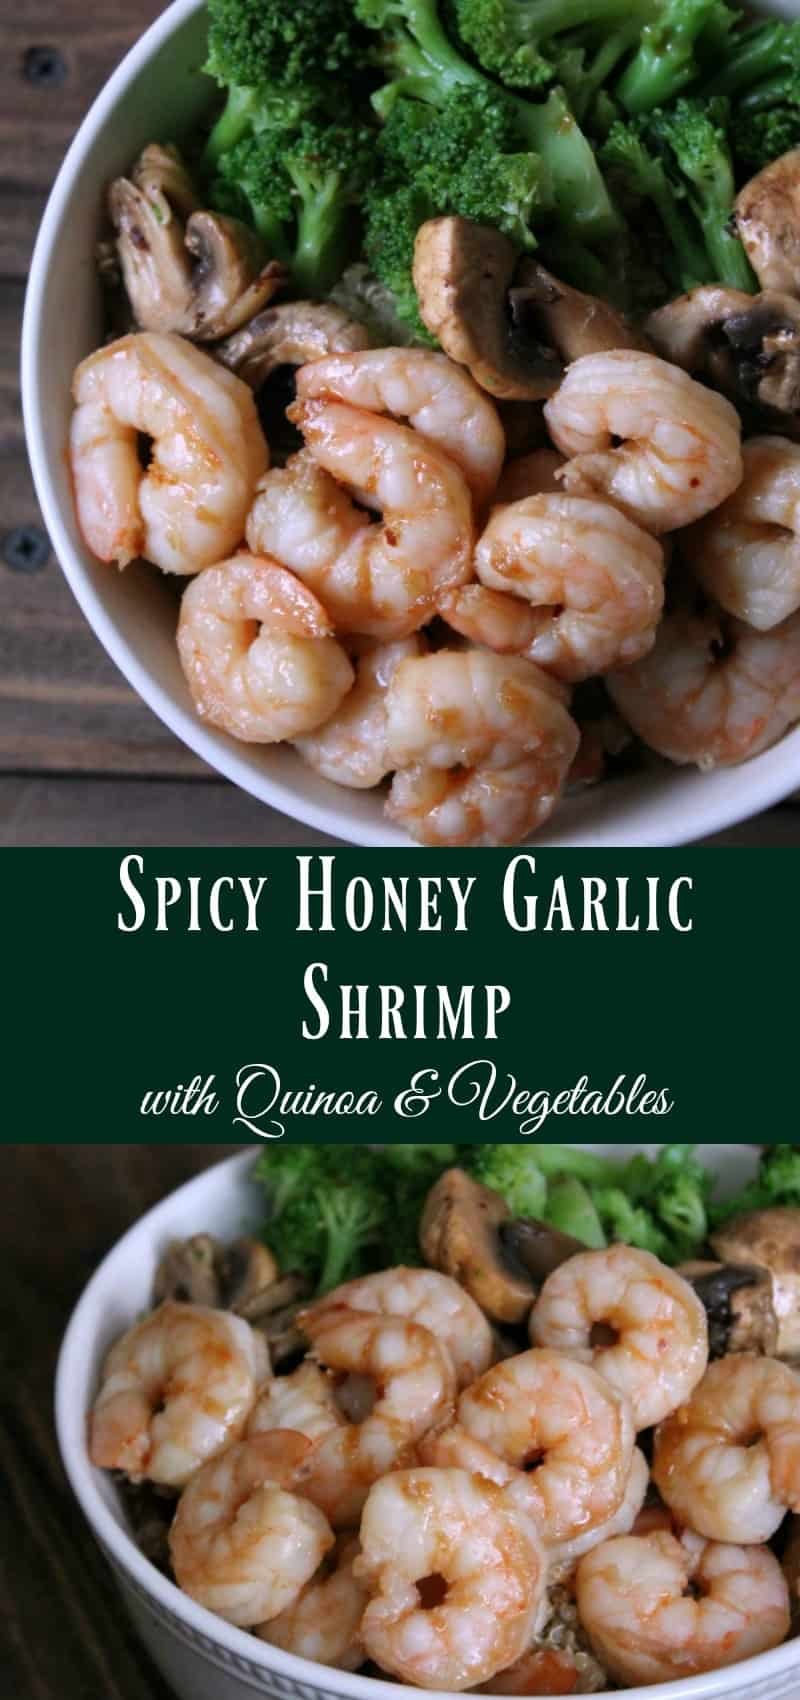 Spicy Honey Garlic Shrimp with Quinoa and Vegetables